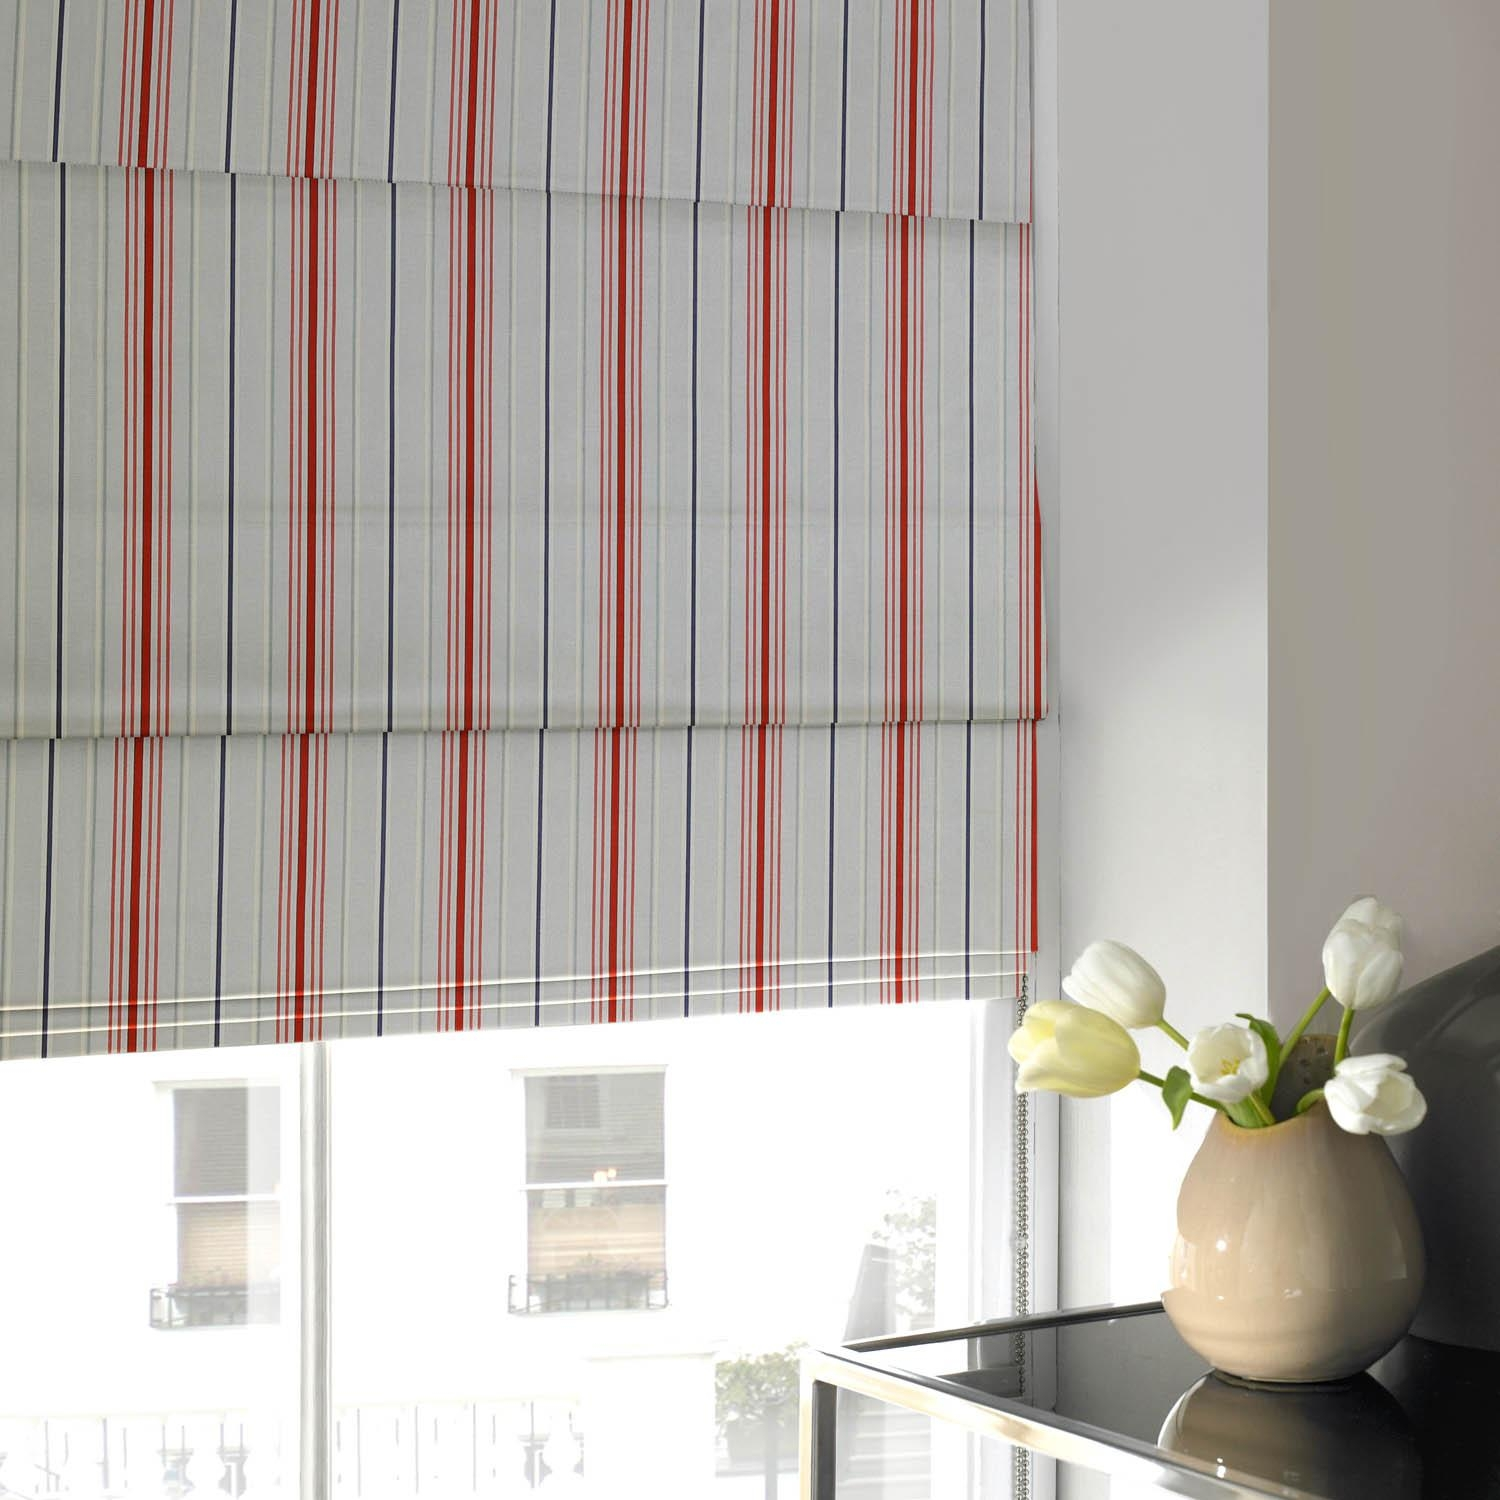 Curtain Blue And White Striped Roman Blinds 1 Of 15 Photos